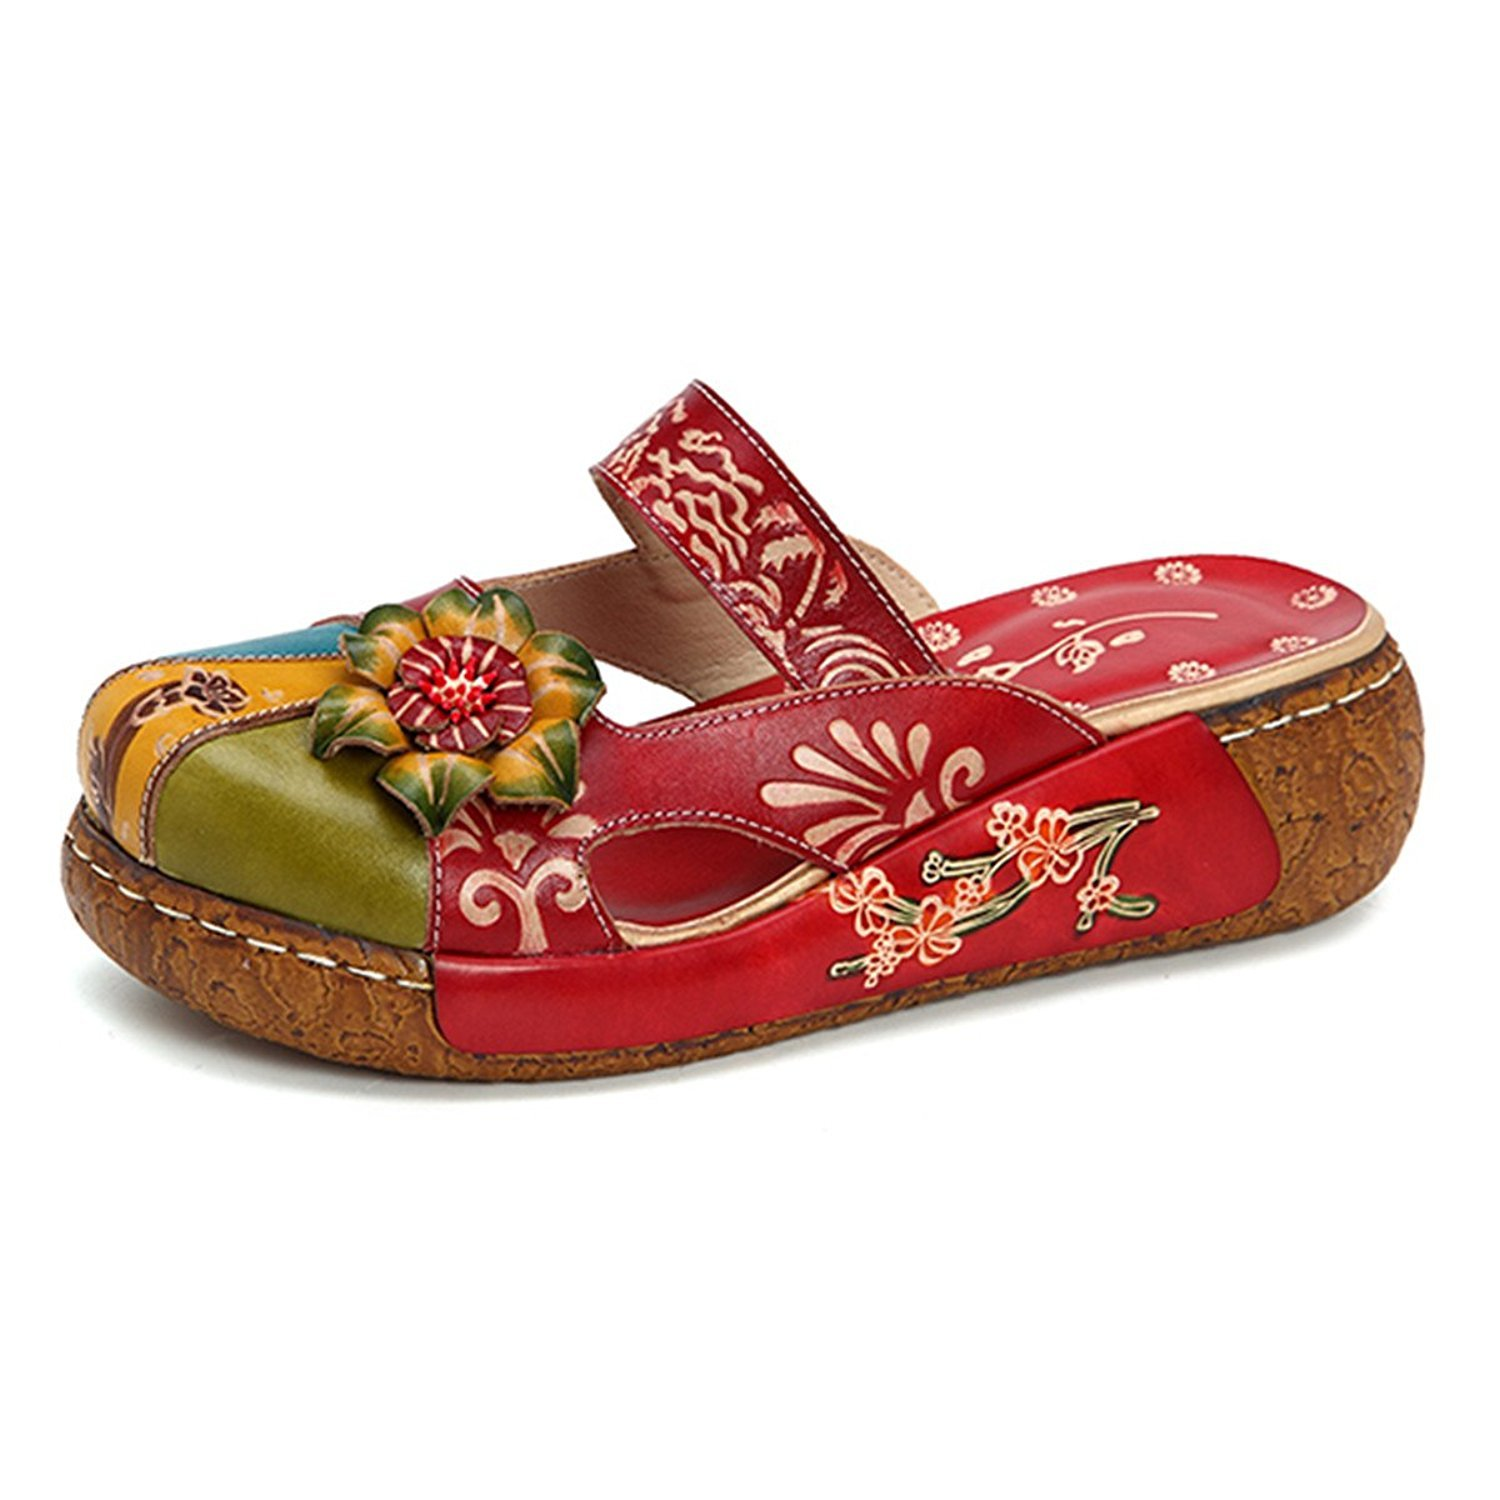 JINGFU Women's colorful Flower Vintage Slip-On Leather Hollow Out Backless Platform Sandals B07B2K8845 9 B(M) US|Red